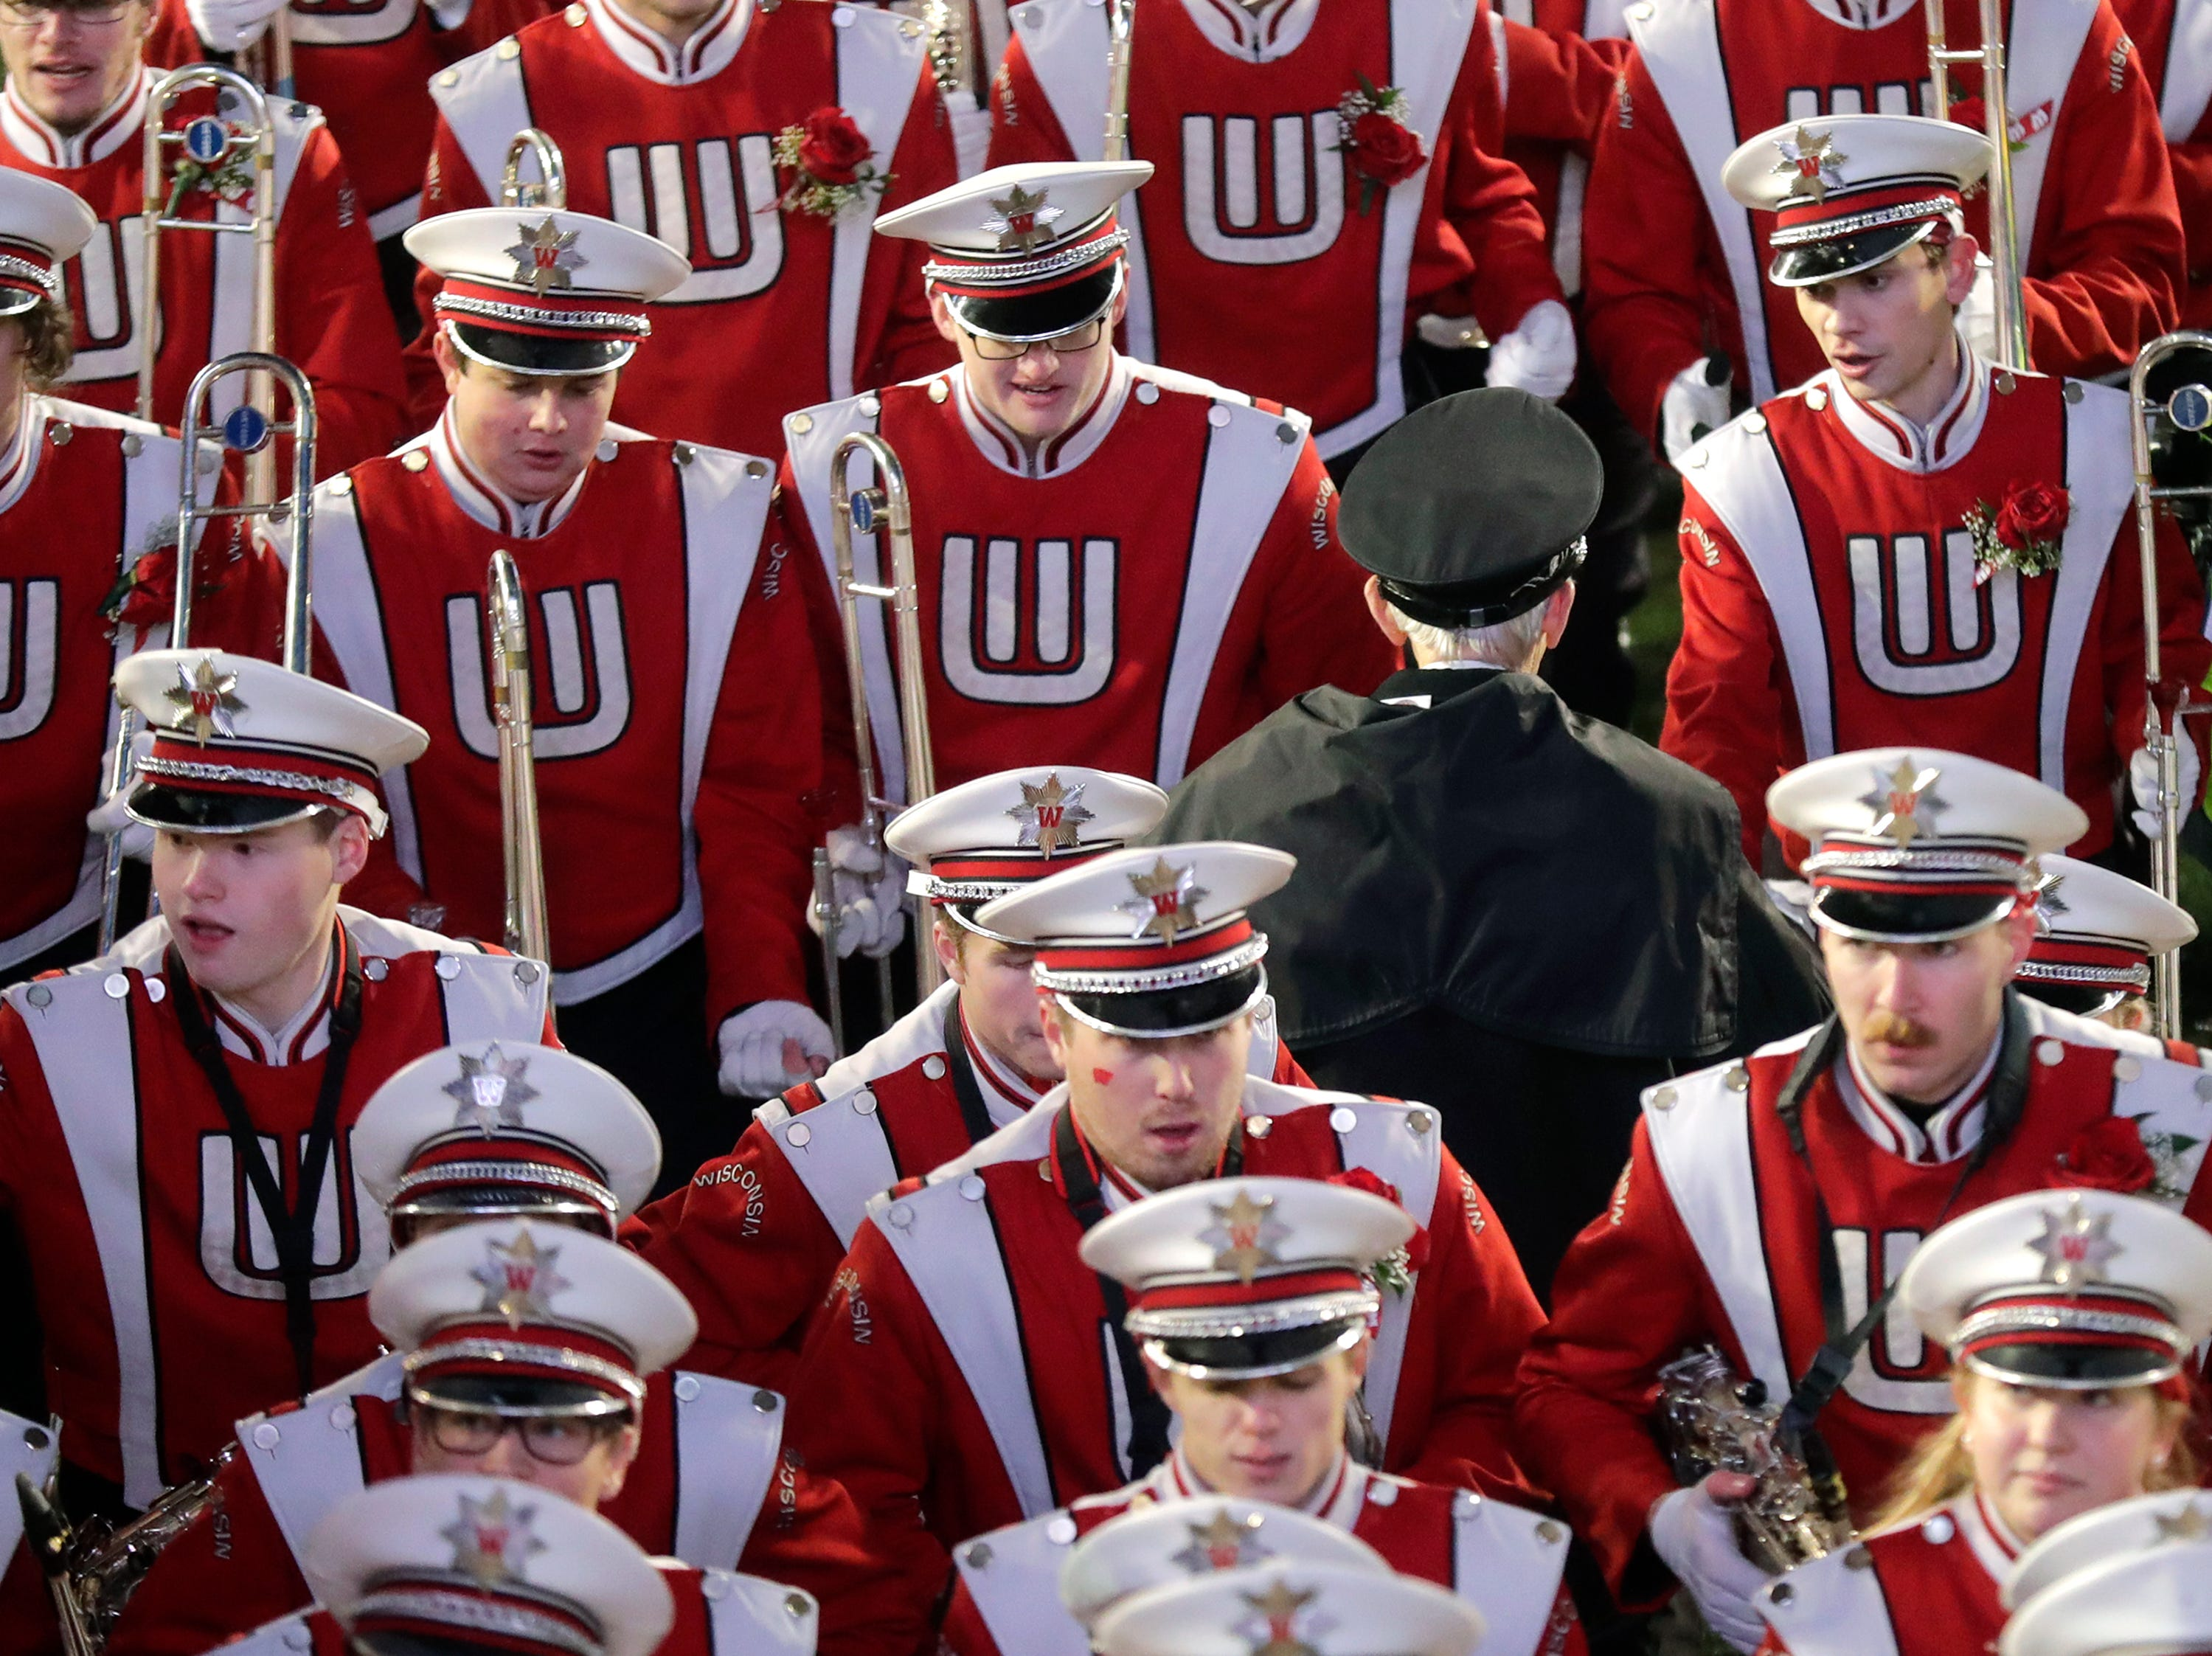 The University of Wisconsin Marching Band Director Michael Leckrone leaves the field following the Wisconsin Badgers loss to the Minnesota Gophers on Saturday, November 24, 2018, at Camp Randall in Madison, Wis. Leckrone is retiring after fifty years as leader of the band.Wm. Glasheen/USA TODAY NETWORK-Wisconsin.